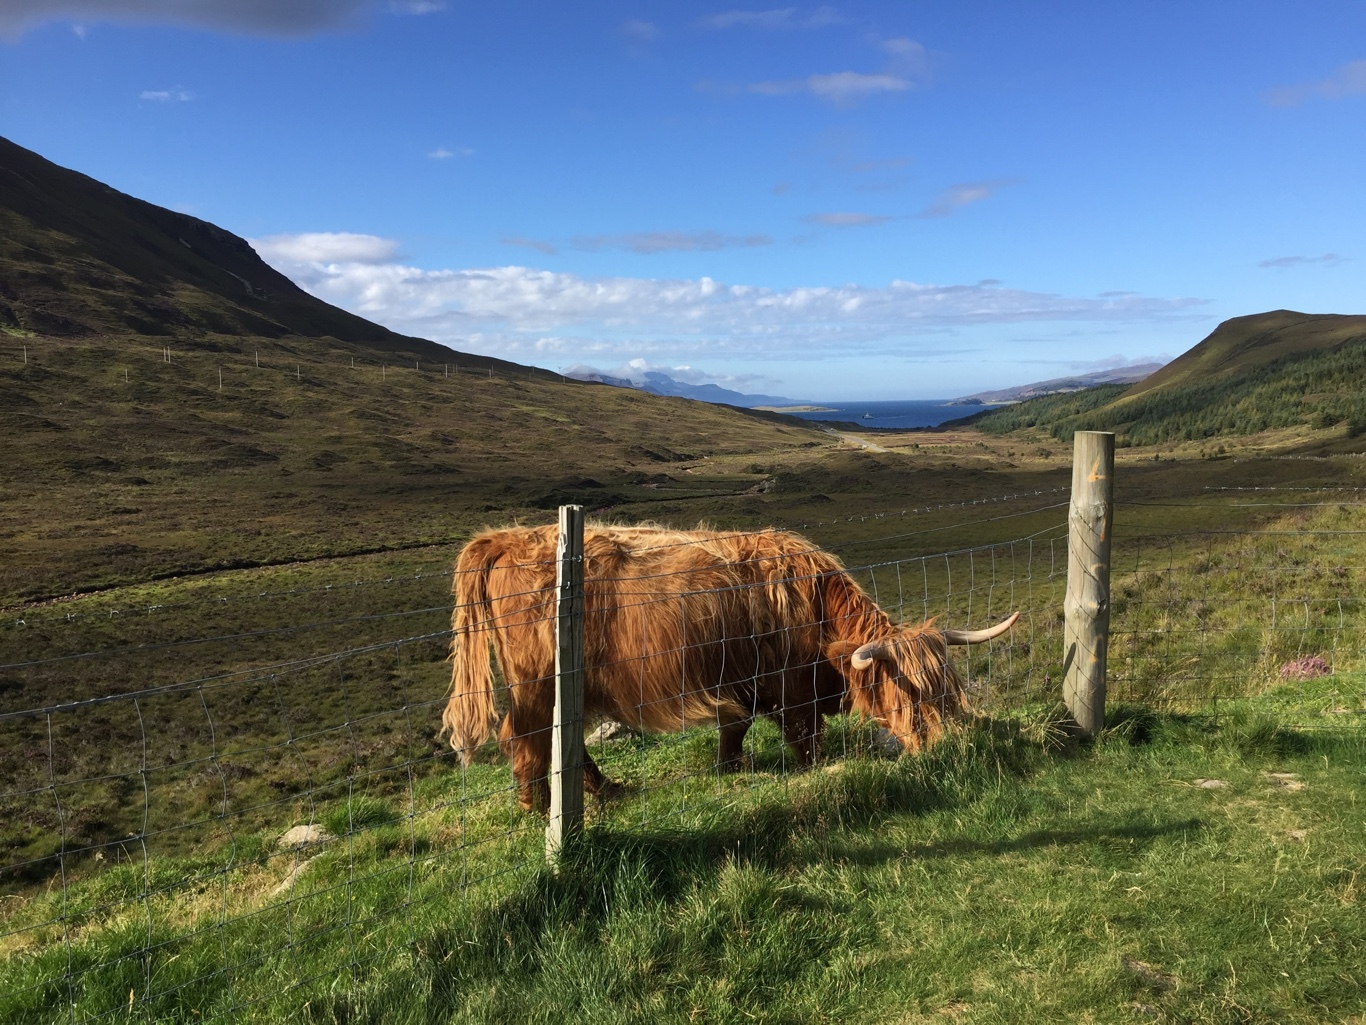 The Highland Cow, The Gentle Giant of Scotland